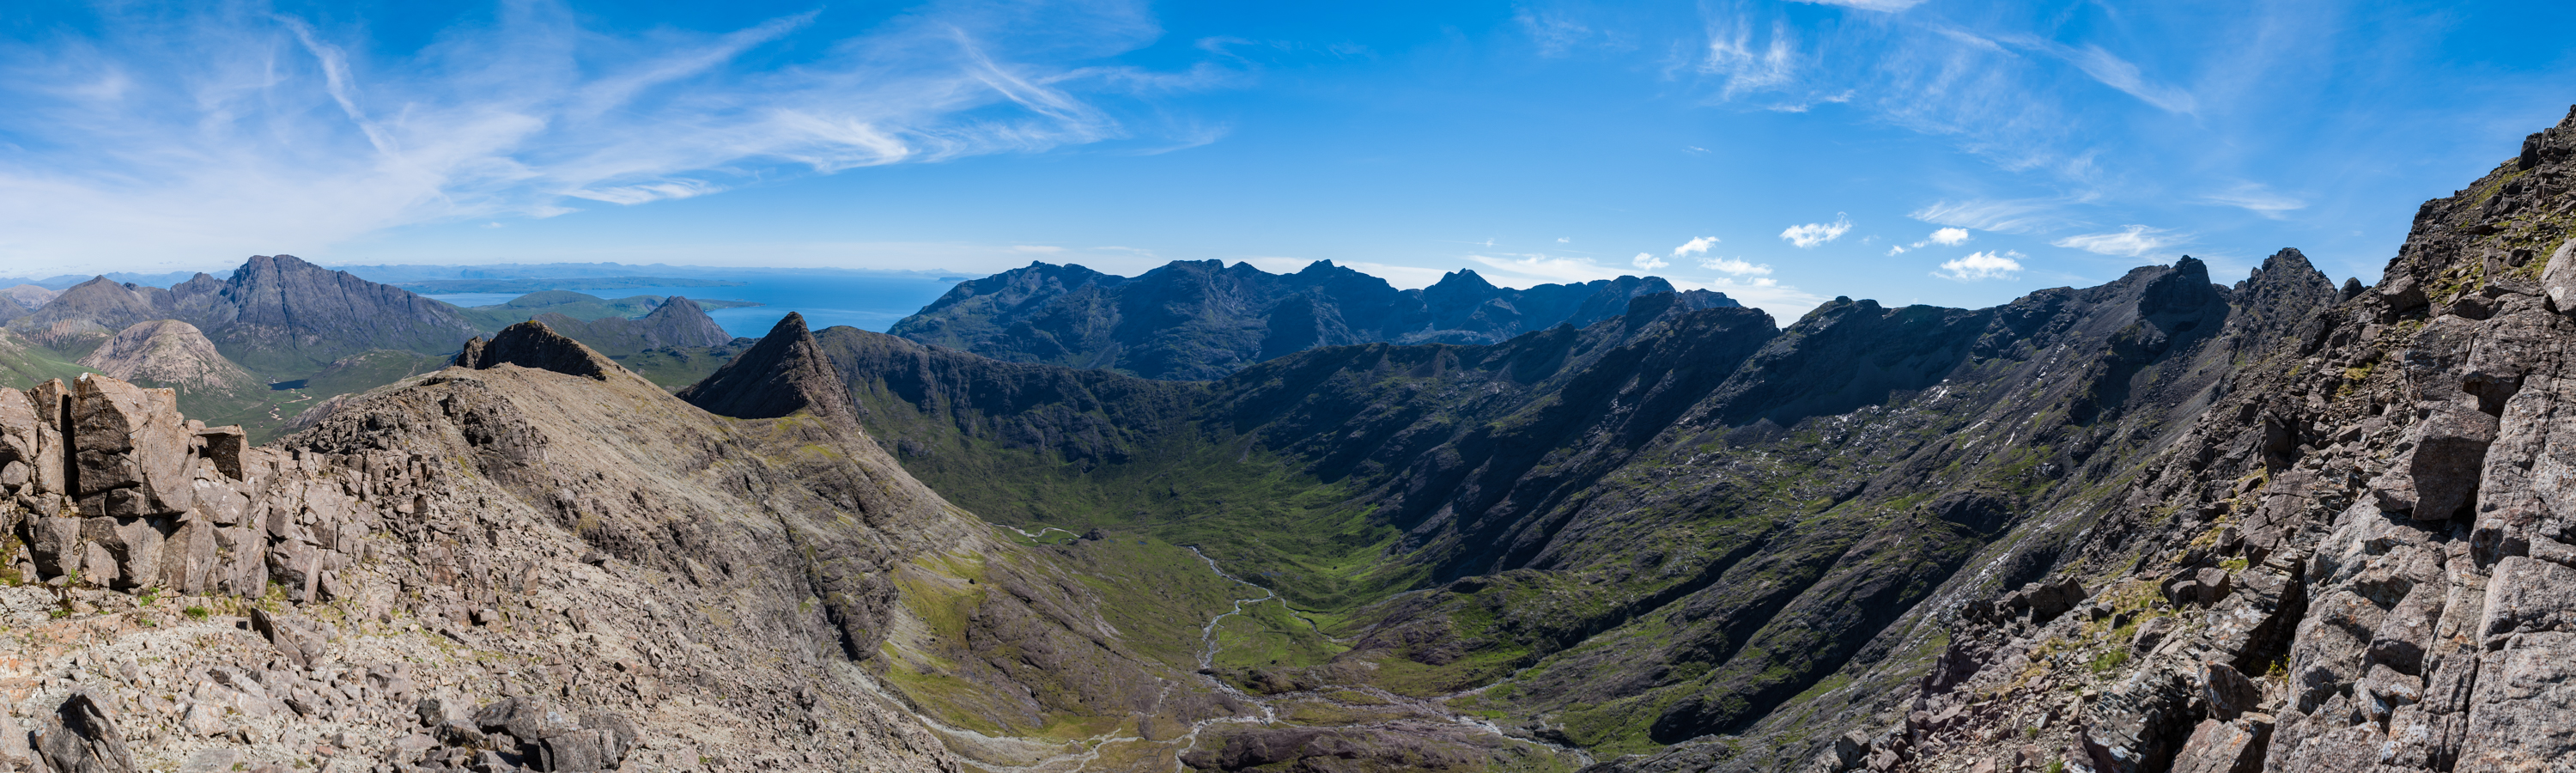 Our first view of the surrounding Cuillin after reaching the ridge.